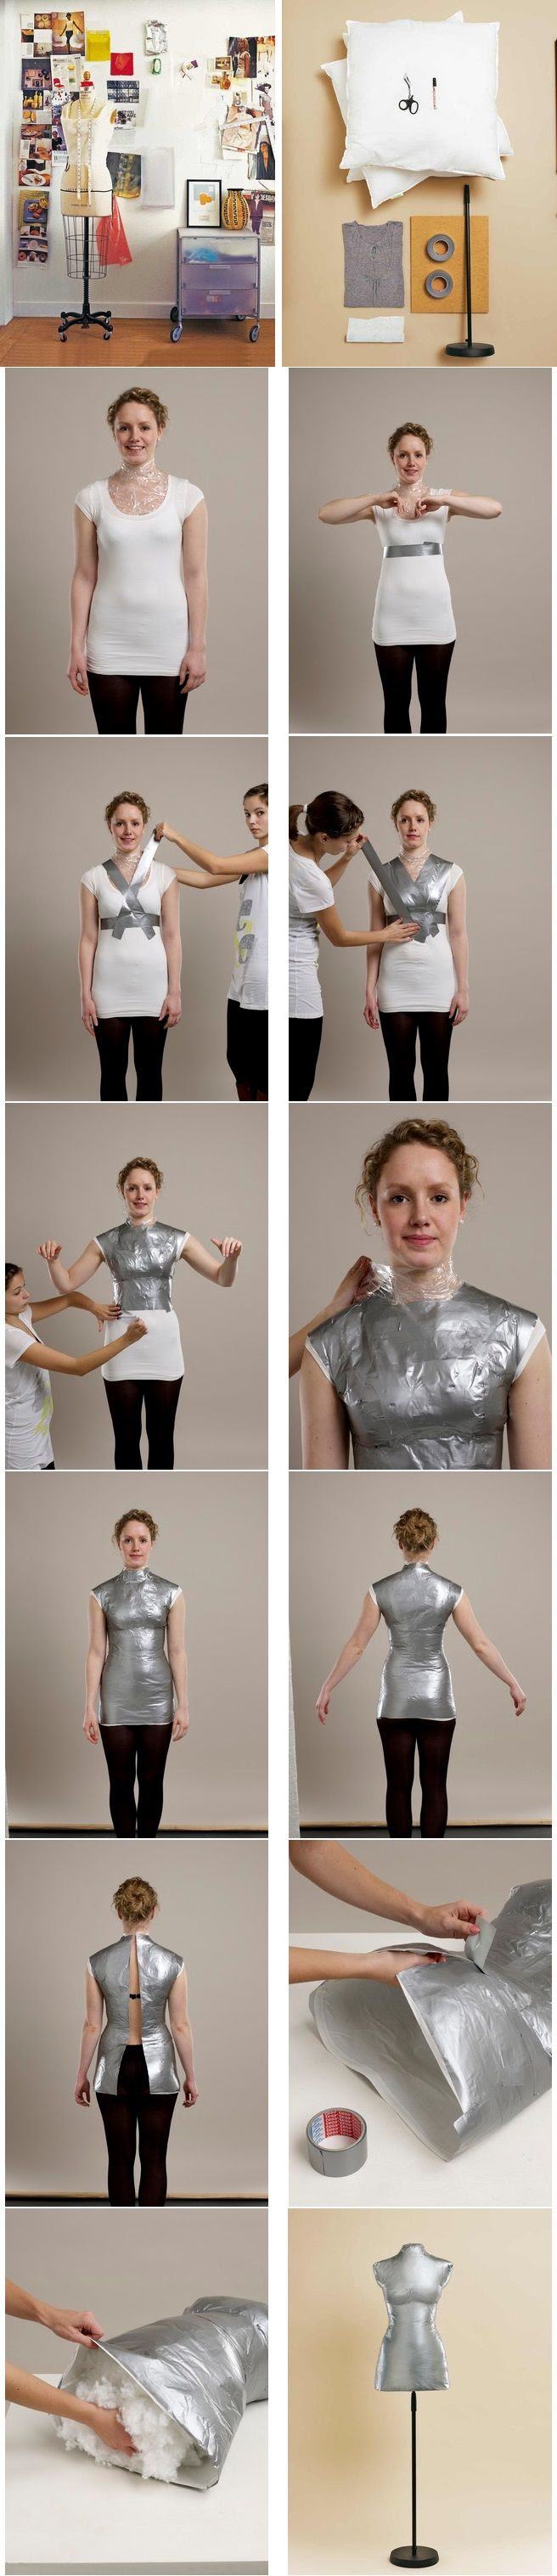 How to make your own dress form. I think making a dress form may be a good plan before diving into dress planning. . .